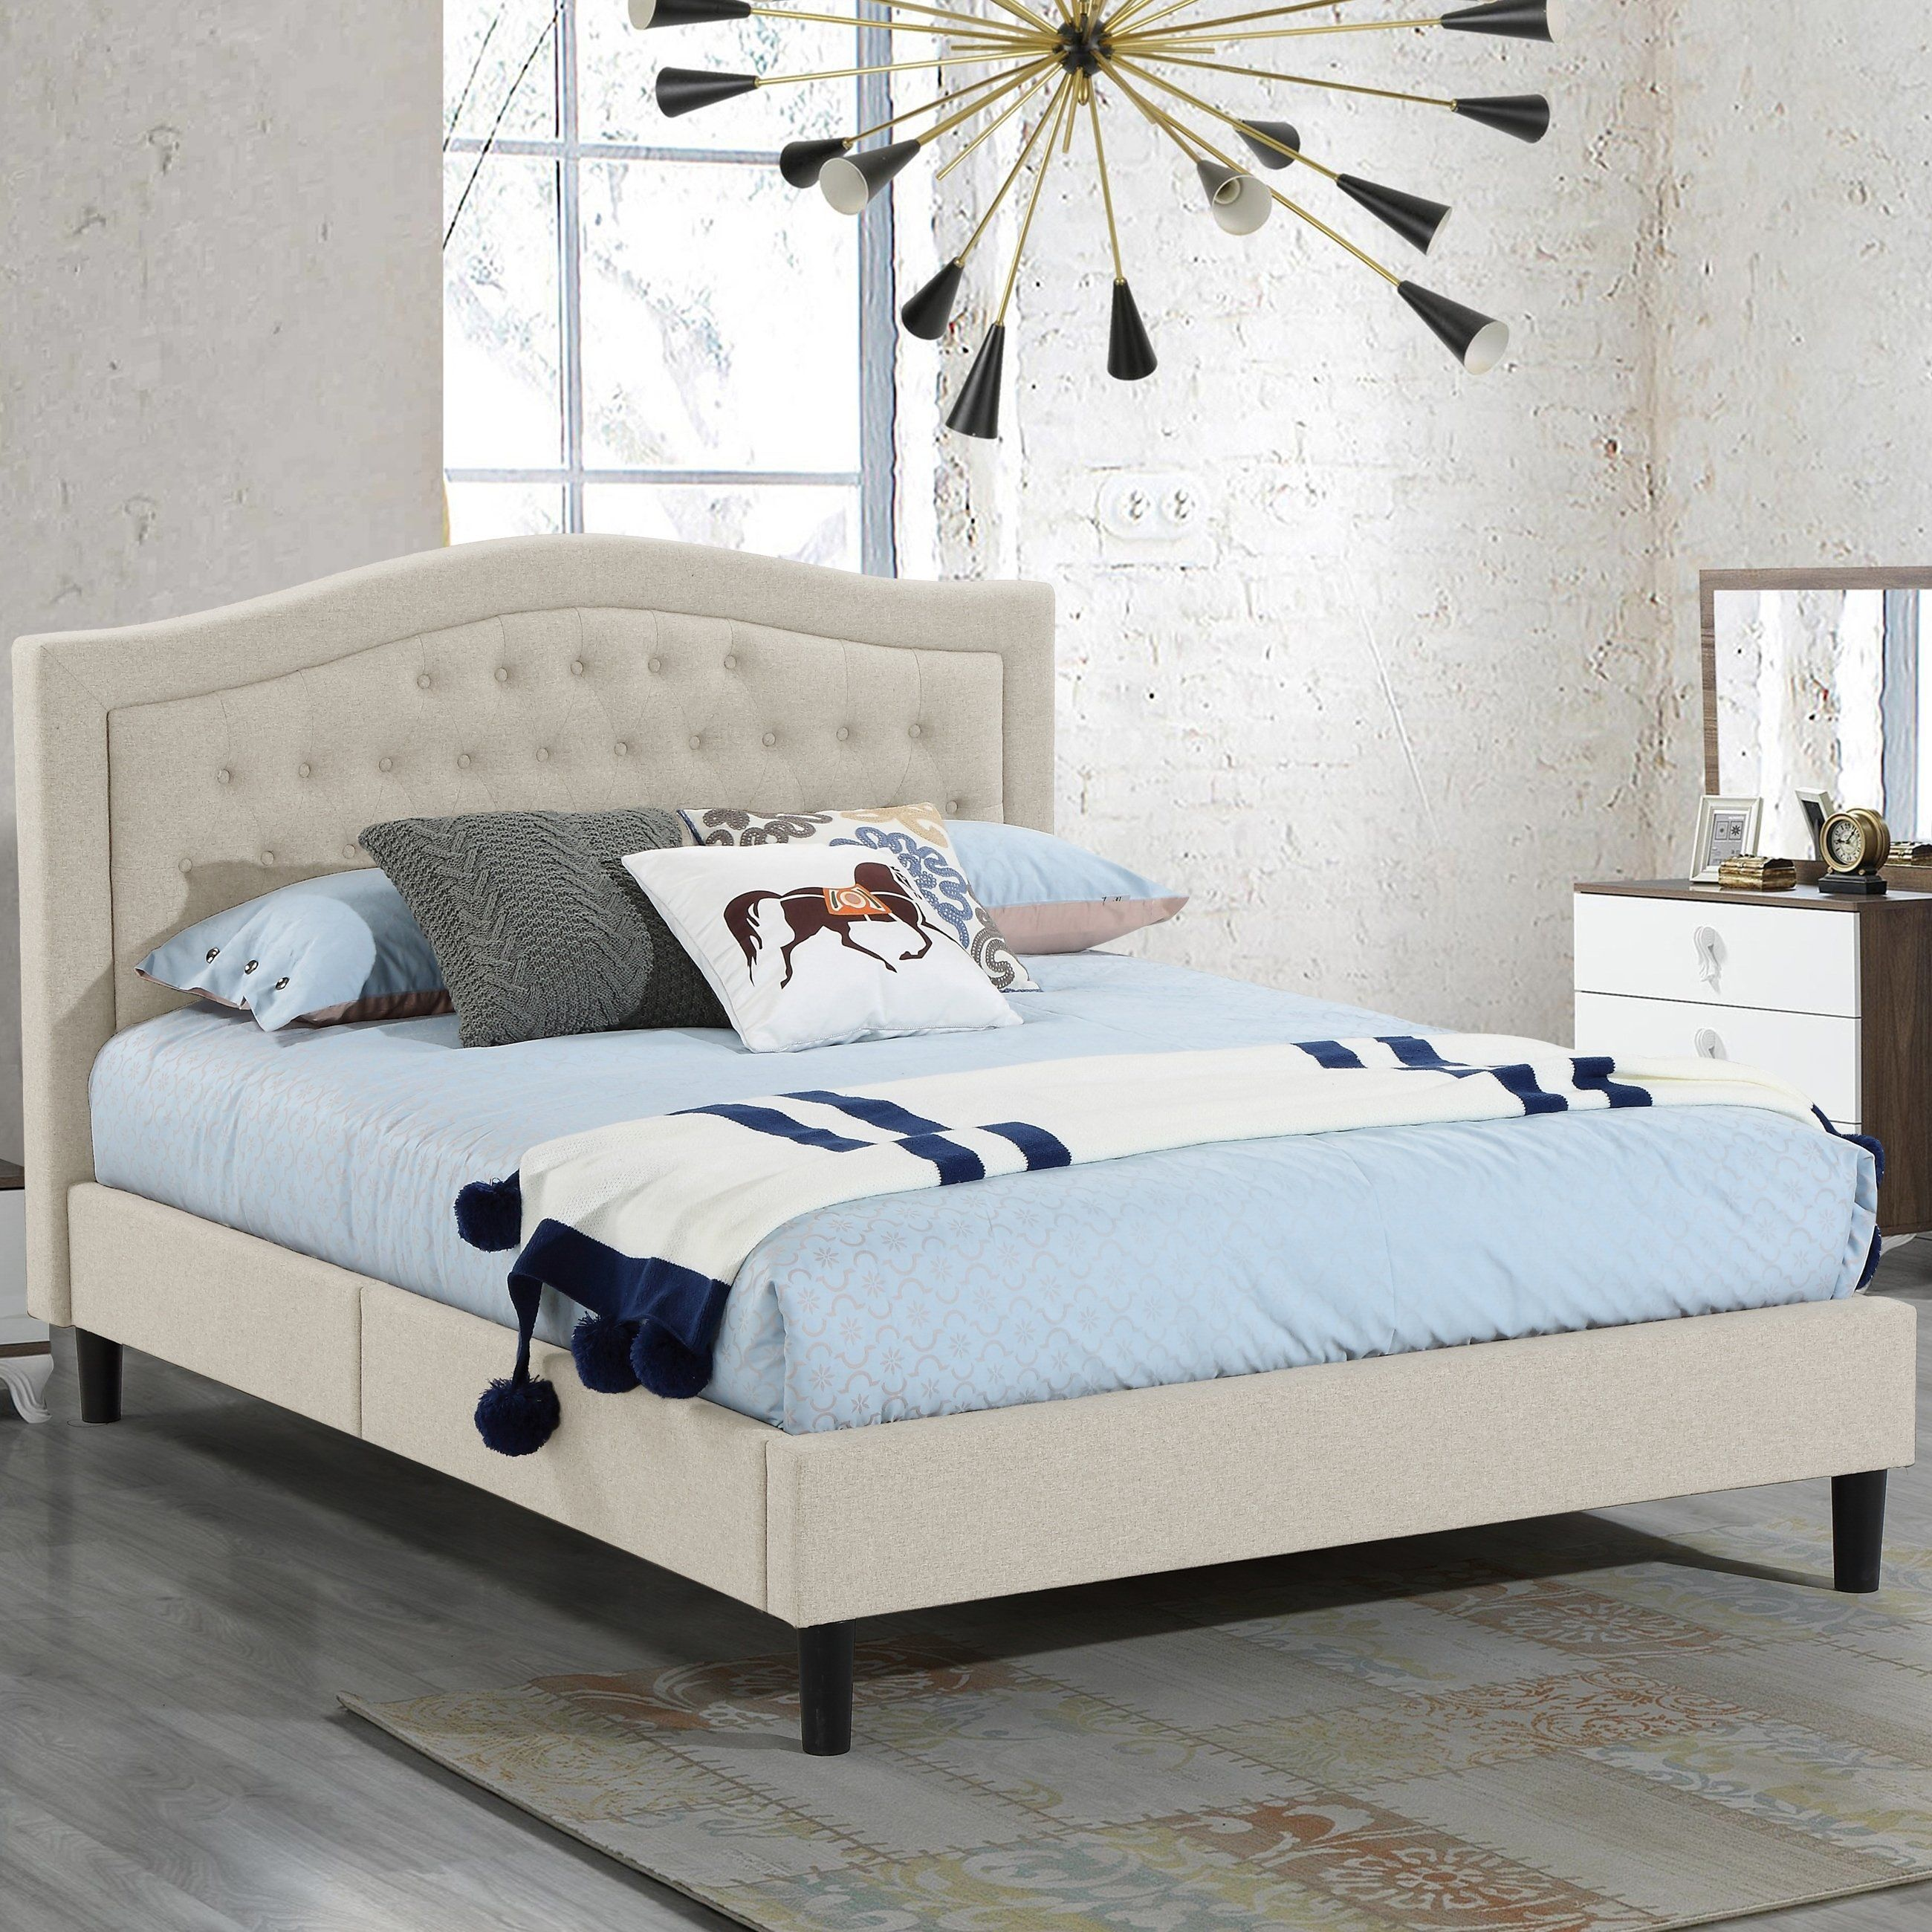 f035475021ca57 Alma Beige Upholstered Platform Bed with Decorative Stitching and Button Panel  Headboard Queen Size